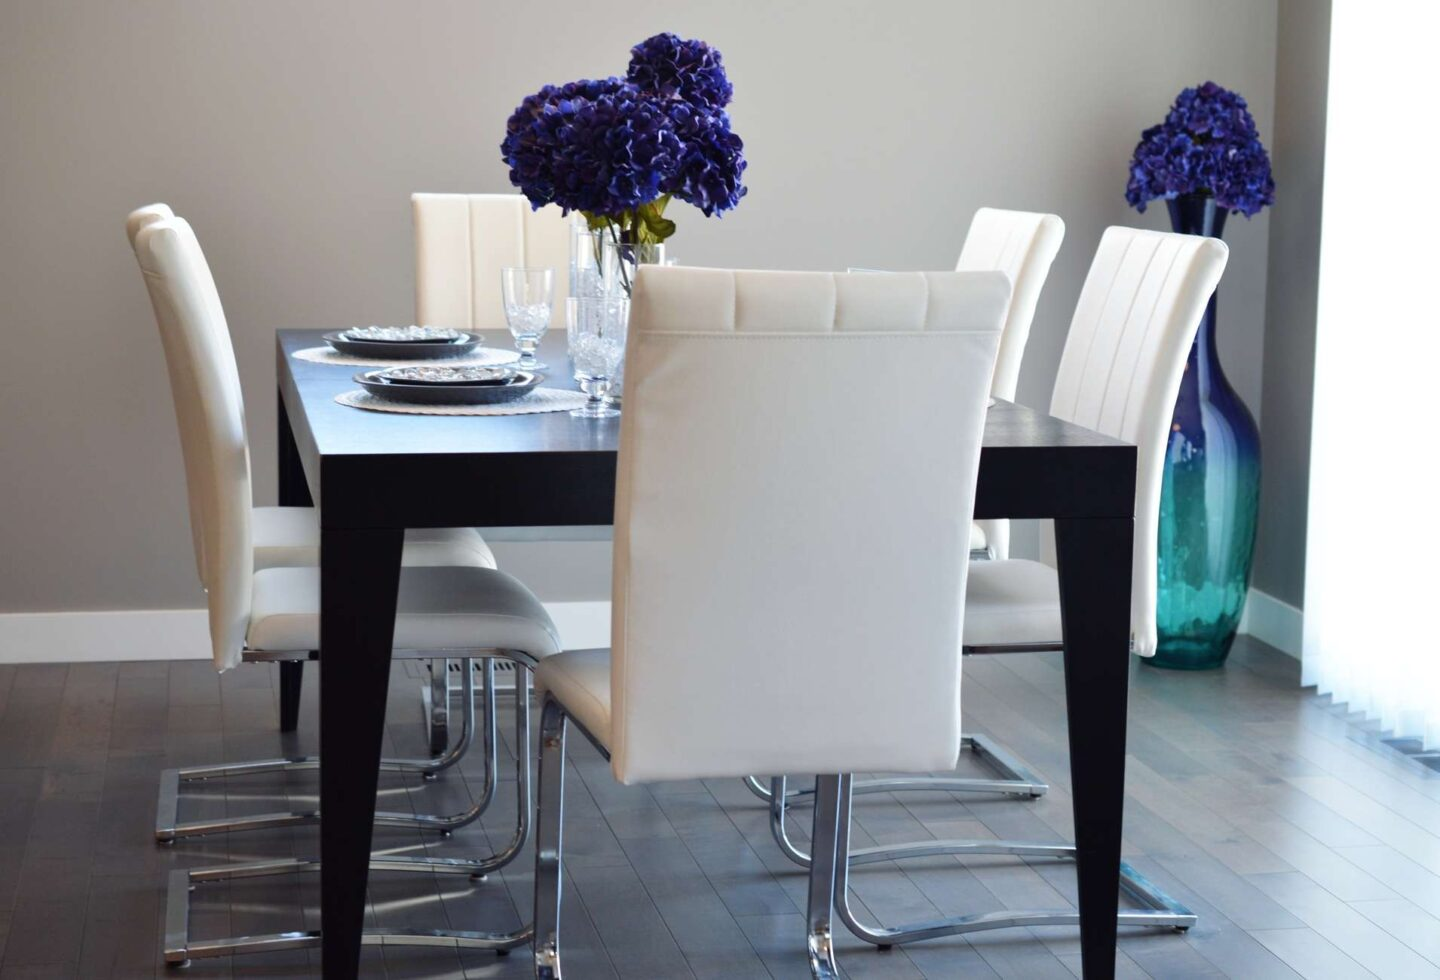 6 Great Kitchen Tips For Entertaining